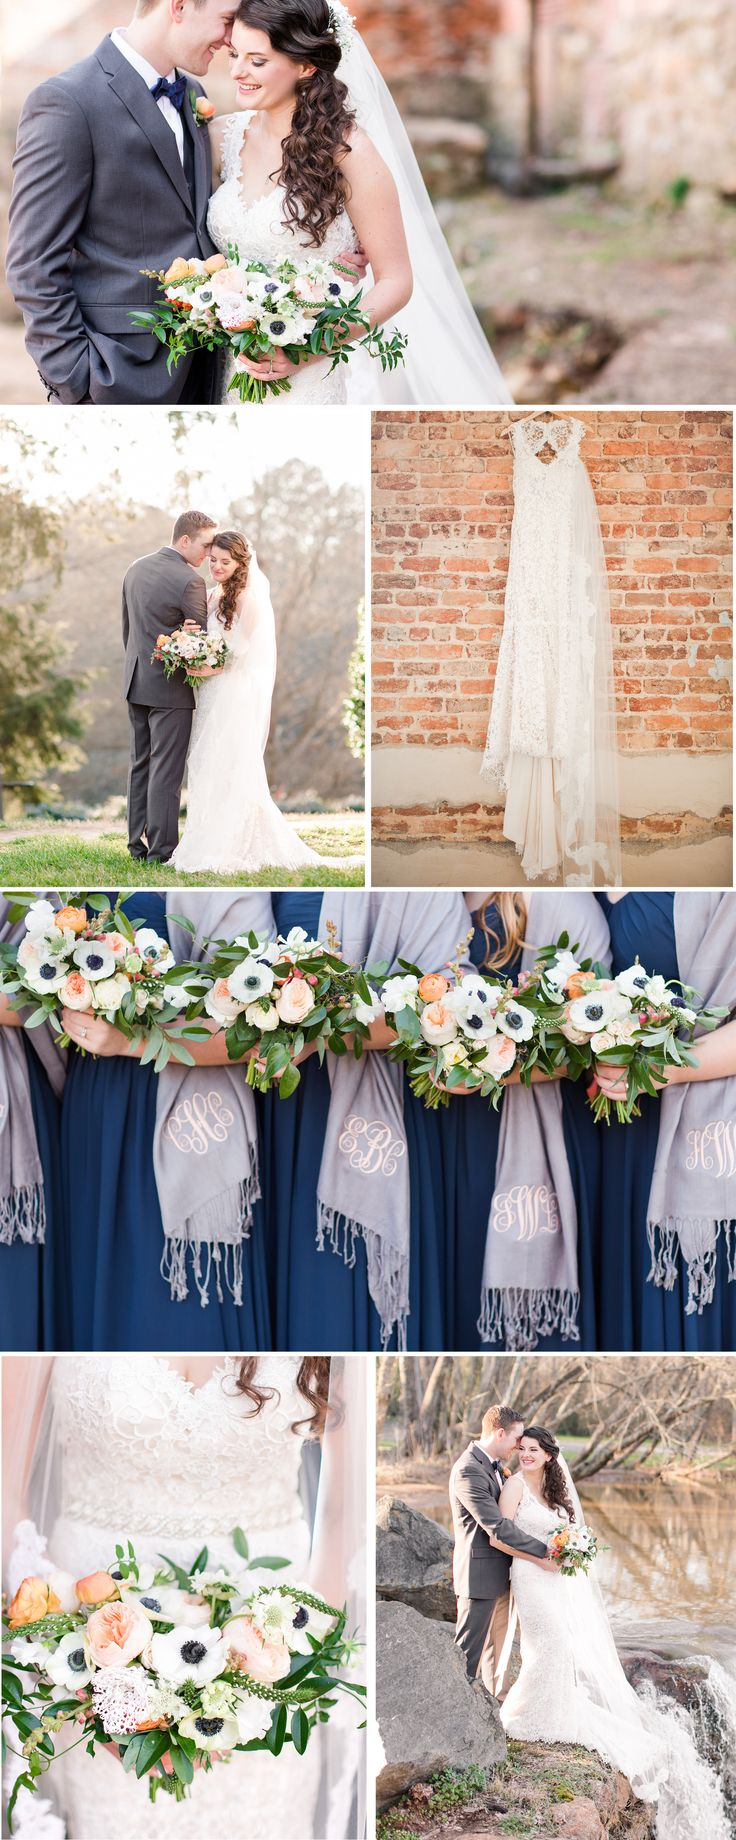 57 best kjp weddings navy royal sky blue tones images on a laboratory mill winter wedding with navy and peach accent colors by katelyn james photography ombrellifo Image collections